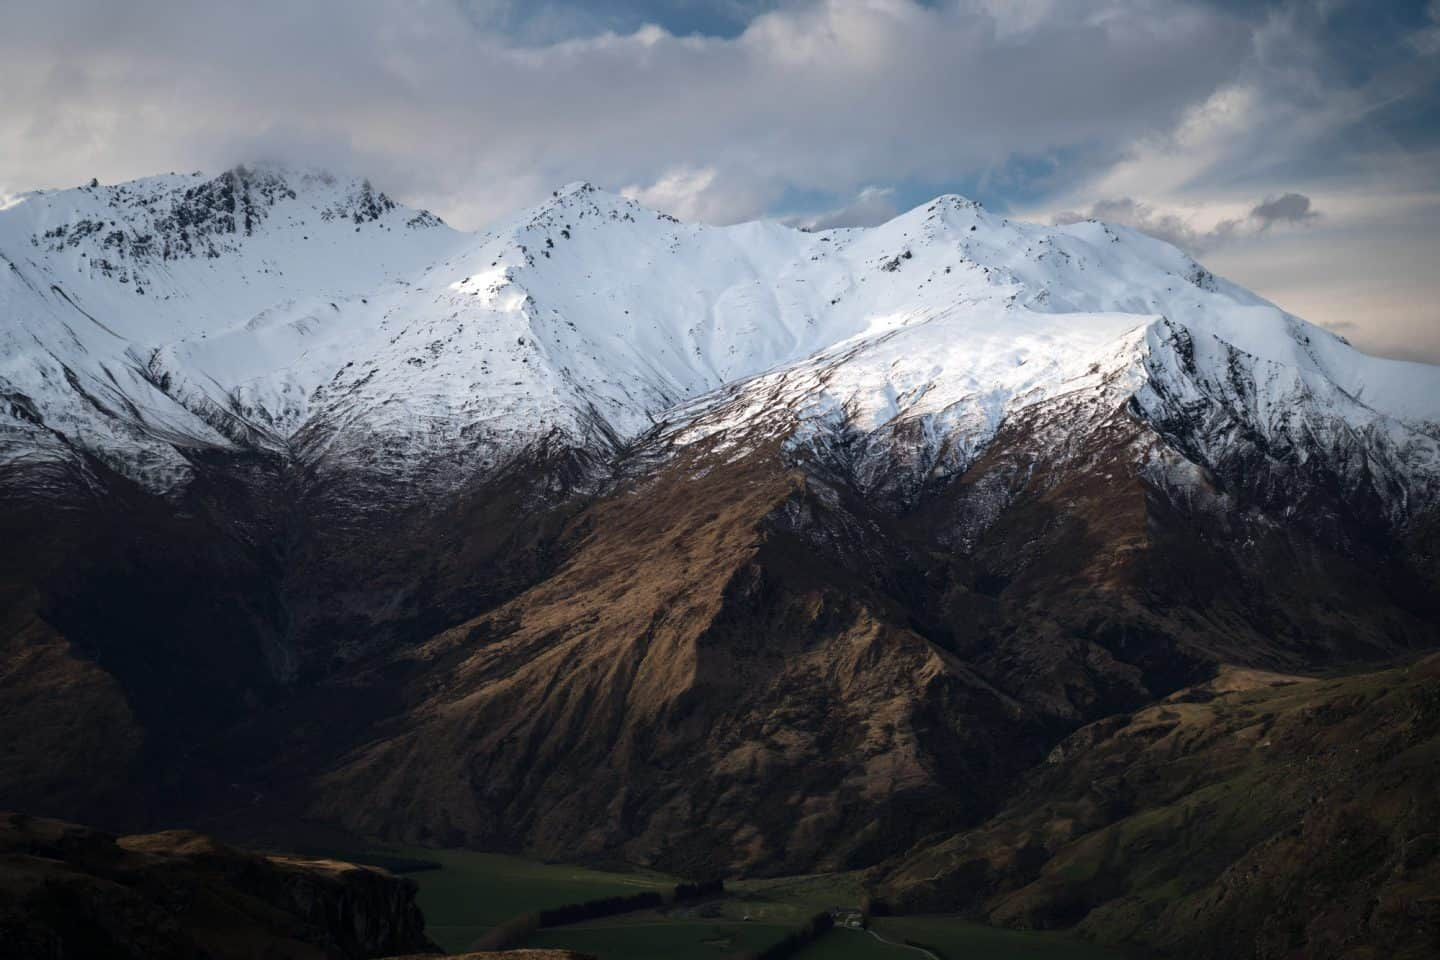 NZ landscape photography of the mountains near Wanaka.